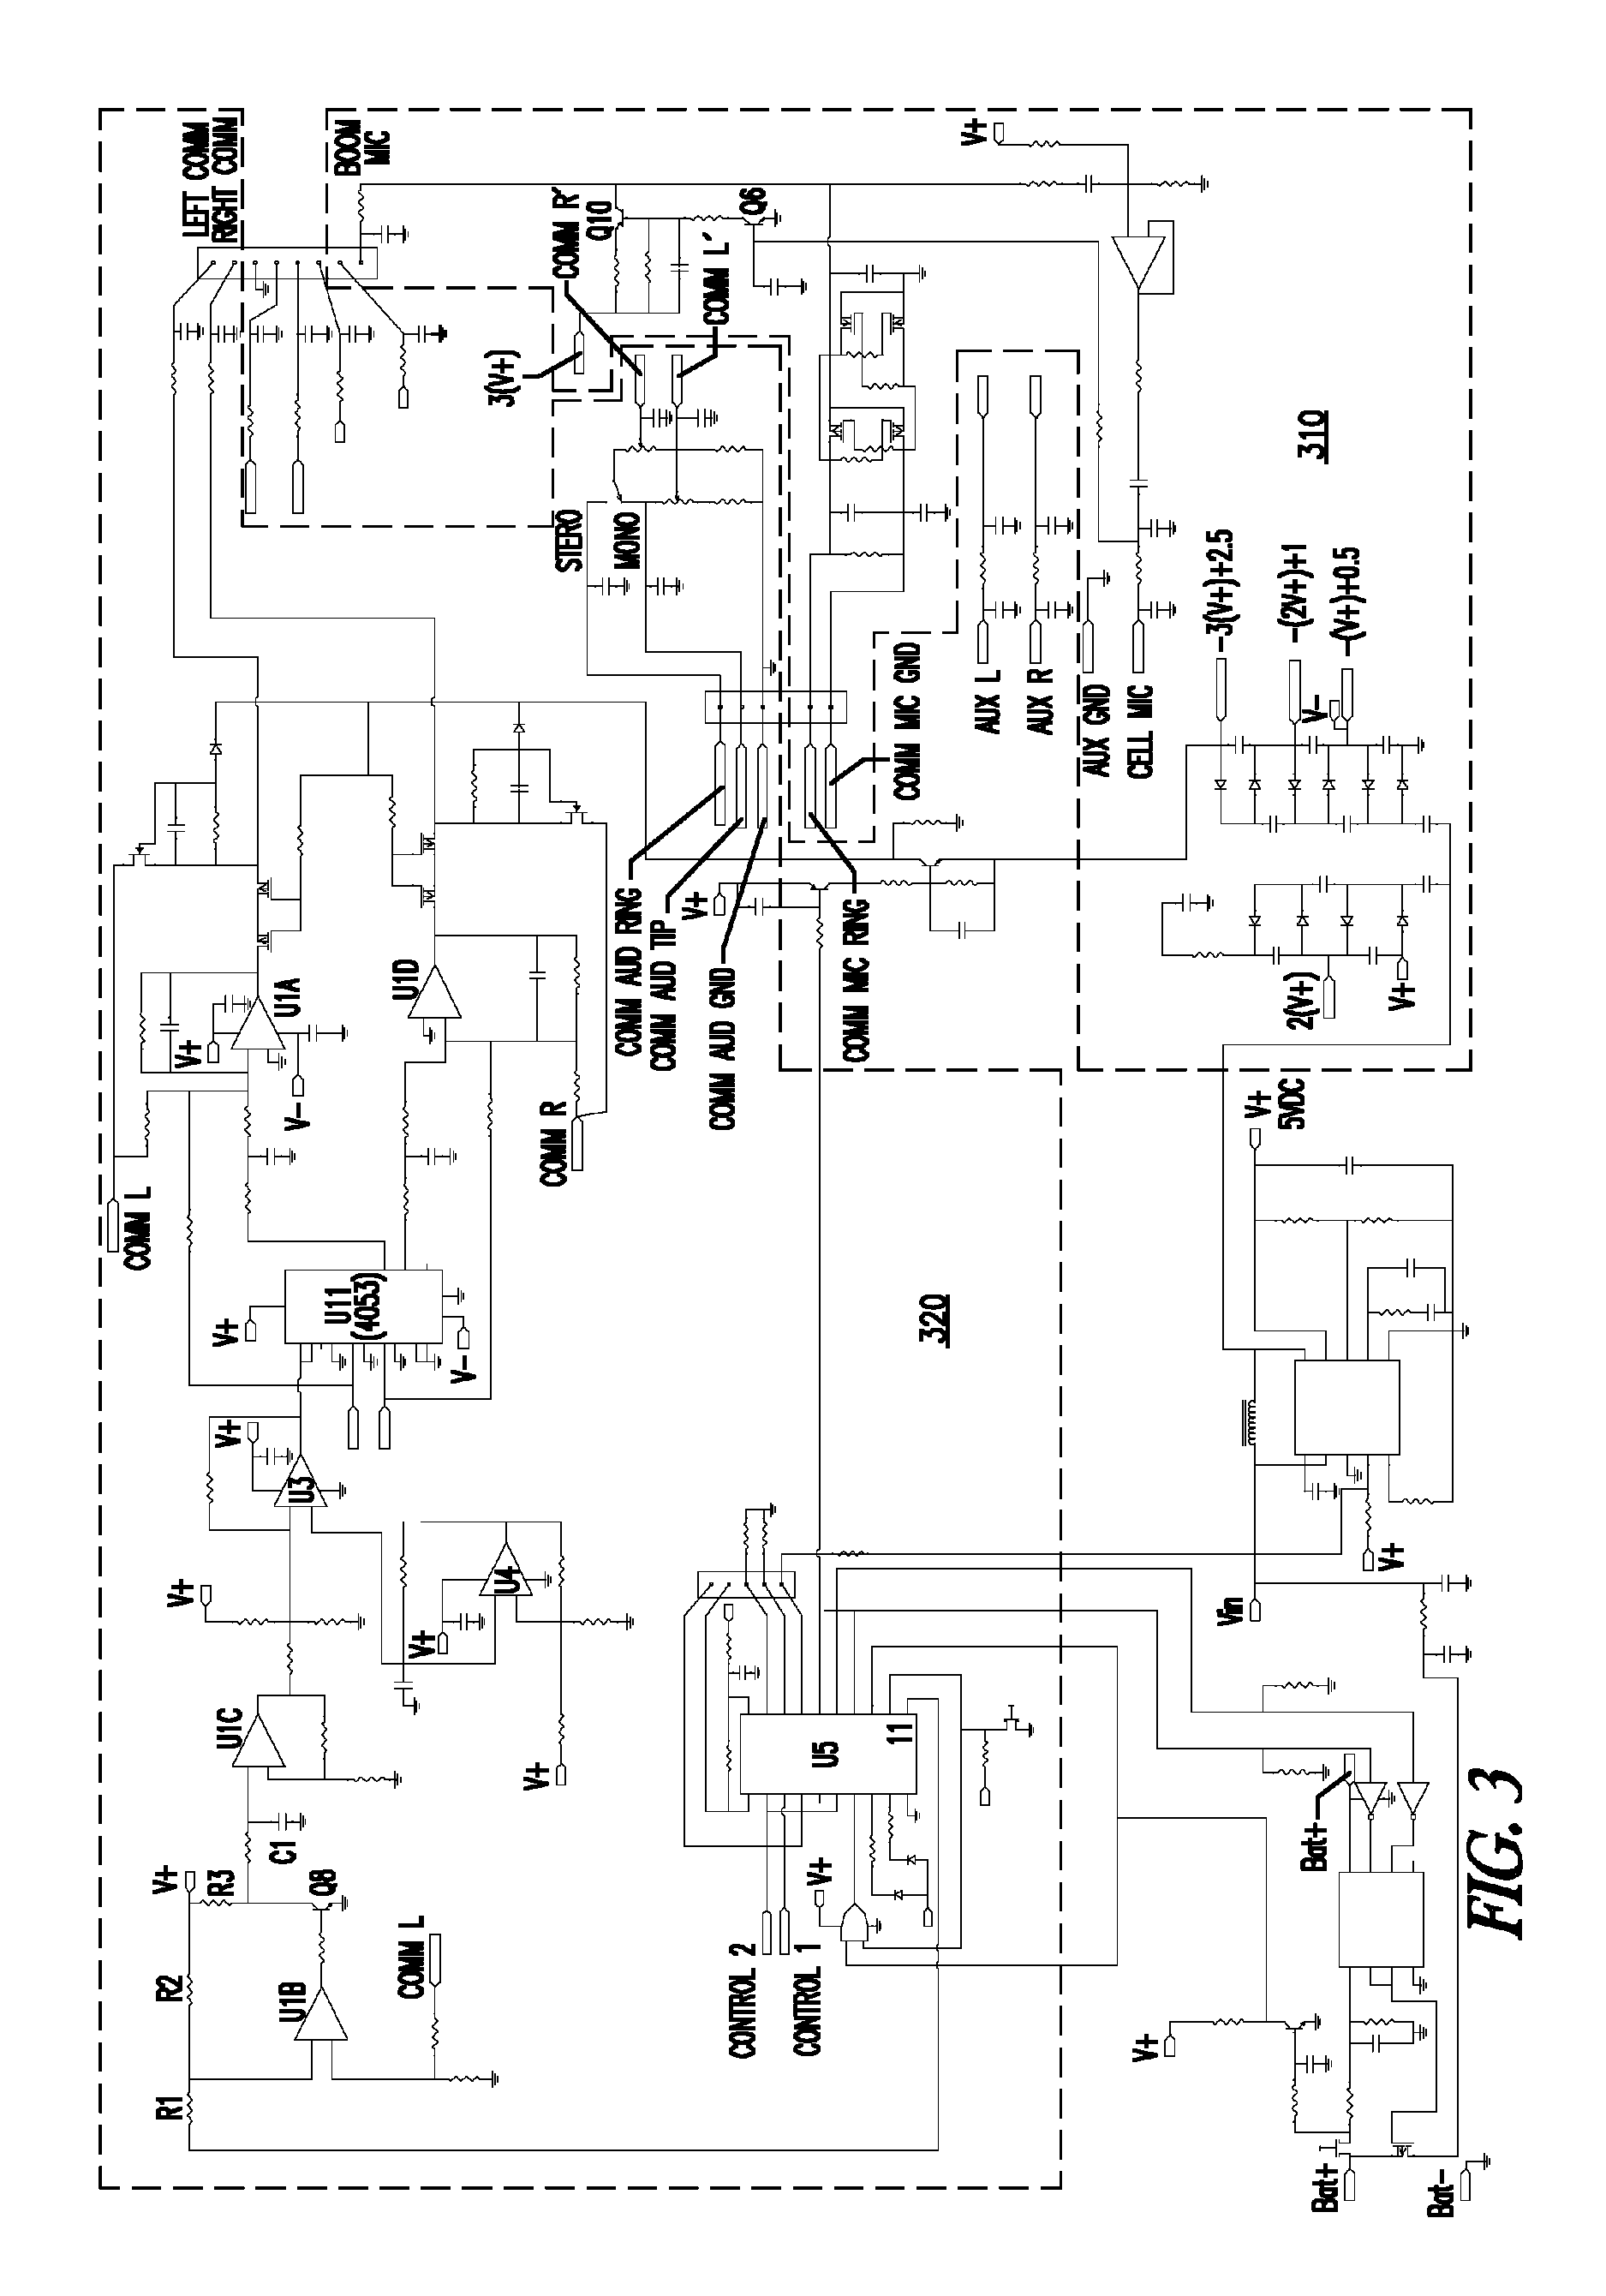 Headset Wiring Diagram Automotive U174 Plug On Peltor Images Gallery